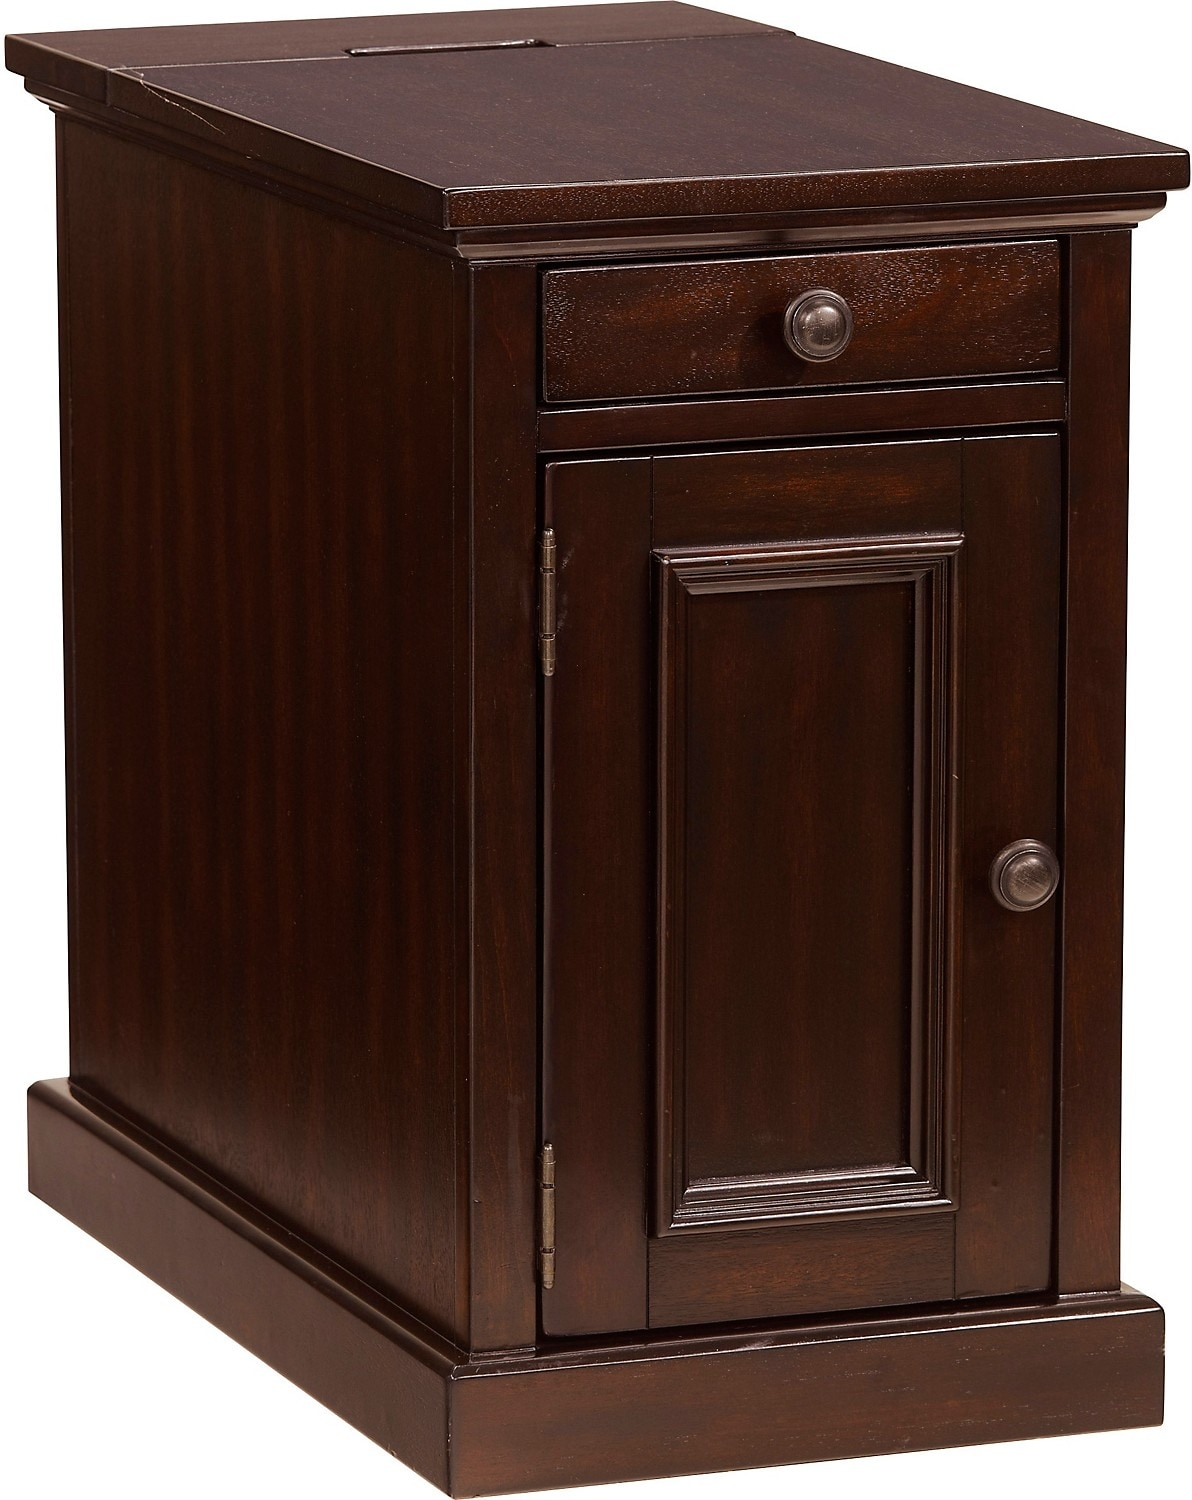 Coventry Accent Table - Sable